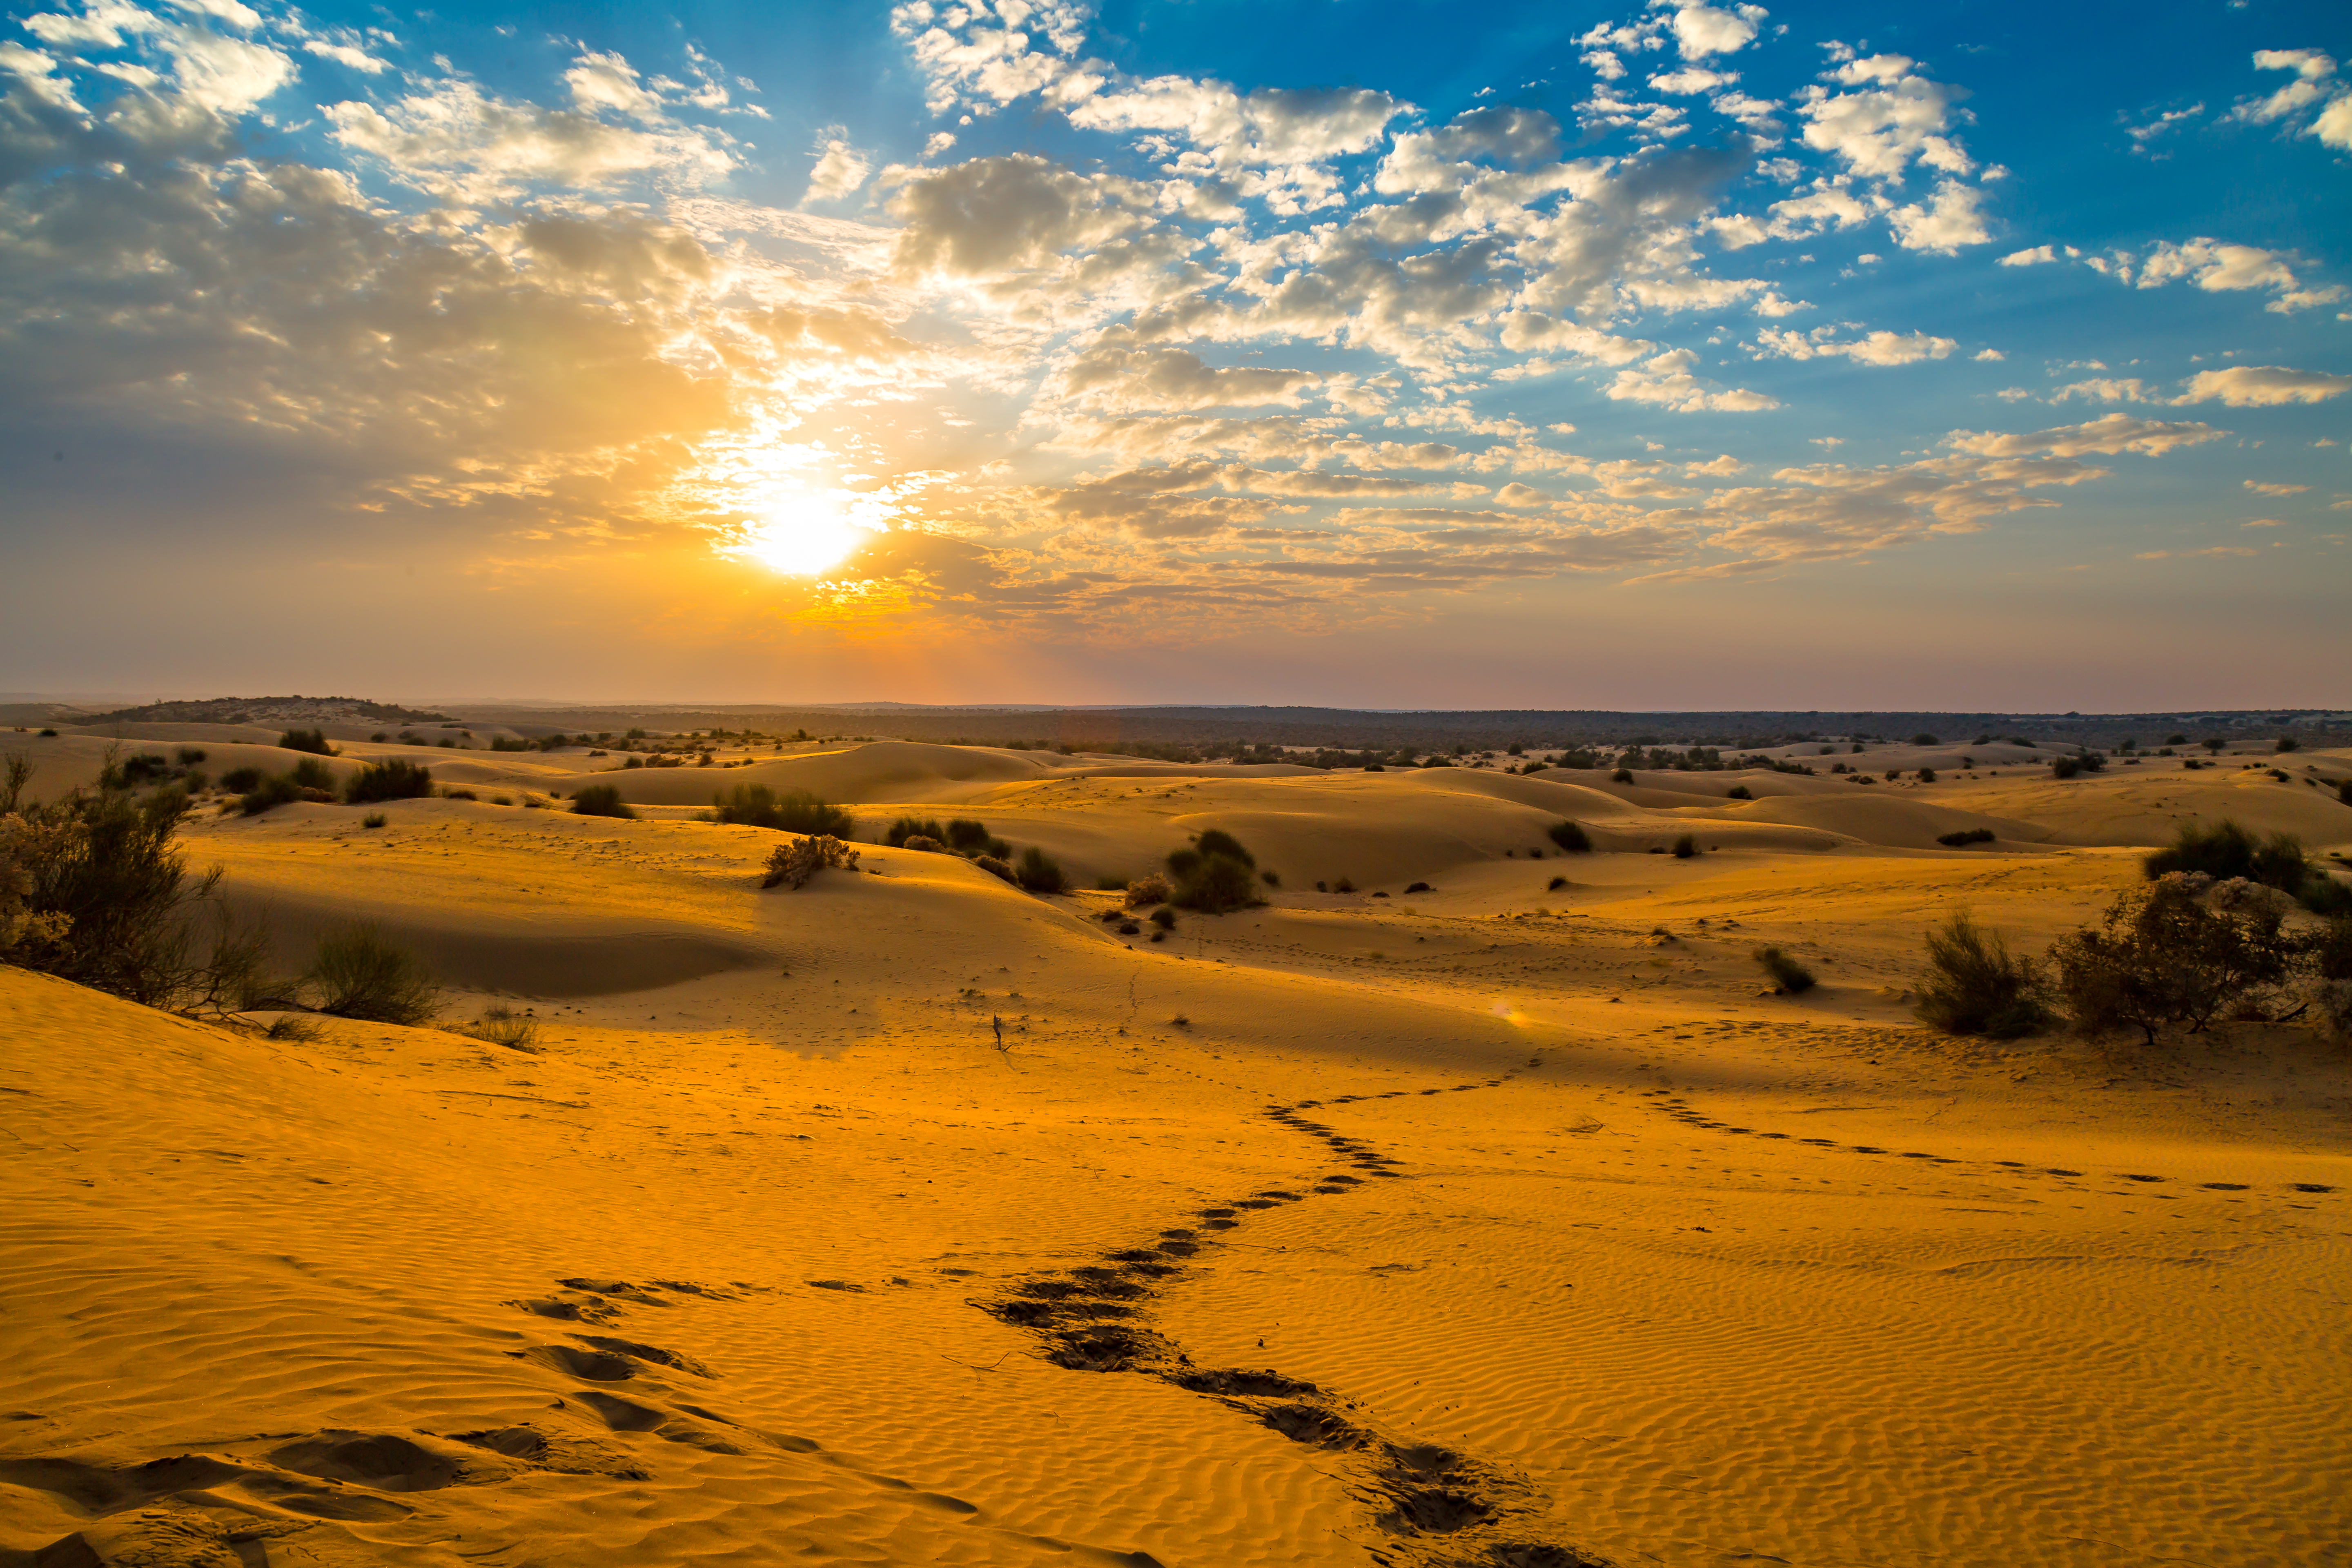 List of Deserts in India